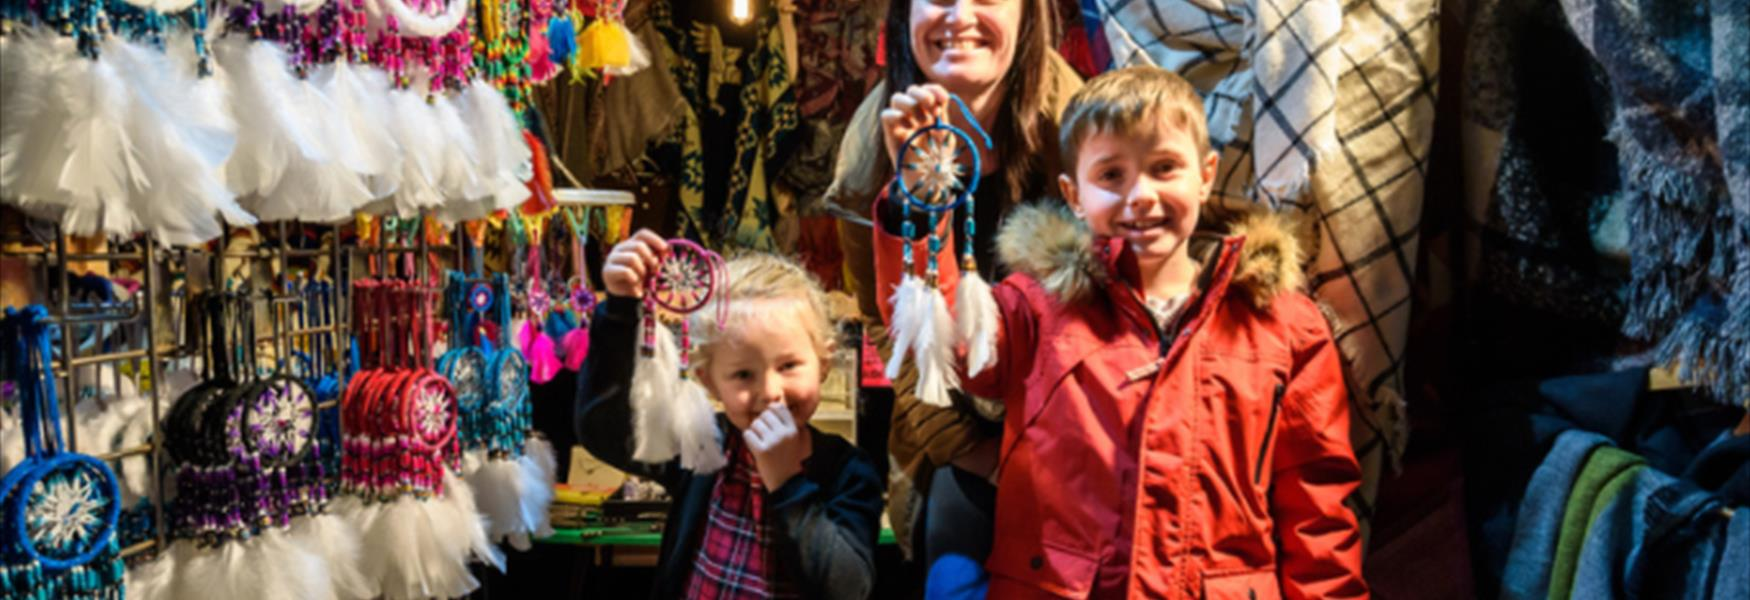 Children holding up some crafts at the Peterborough Christmas Market